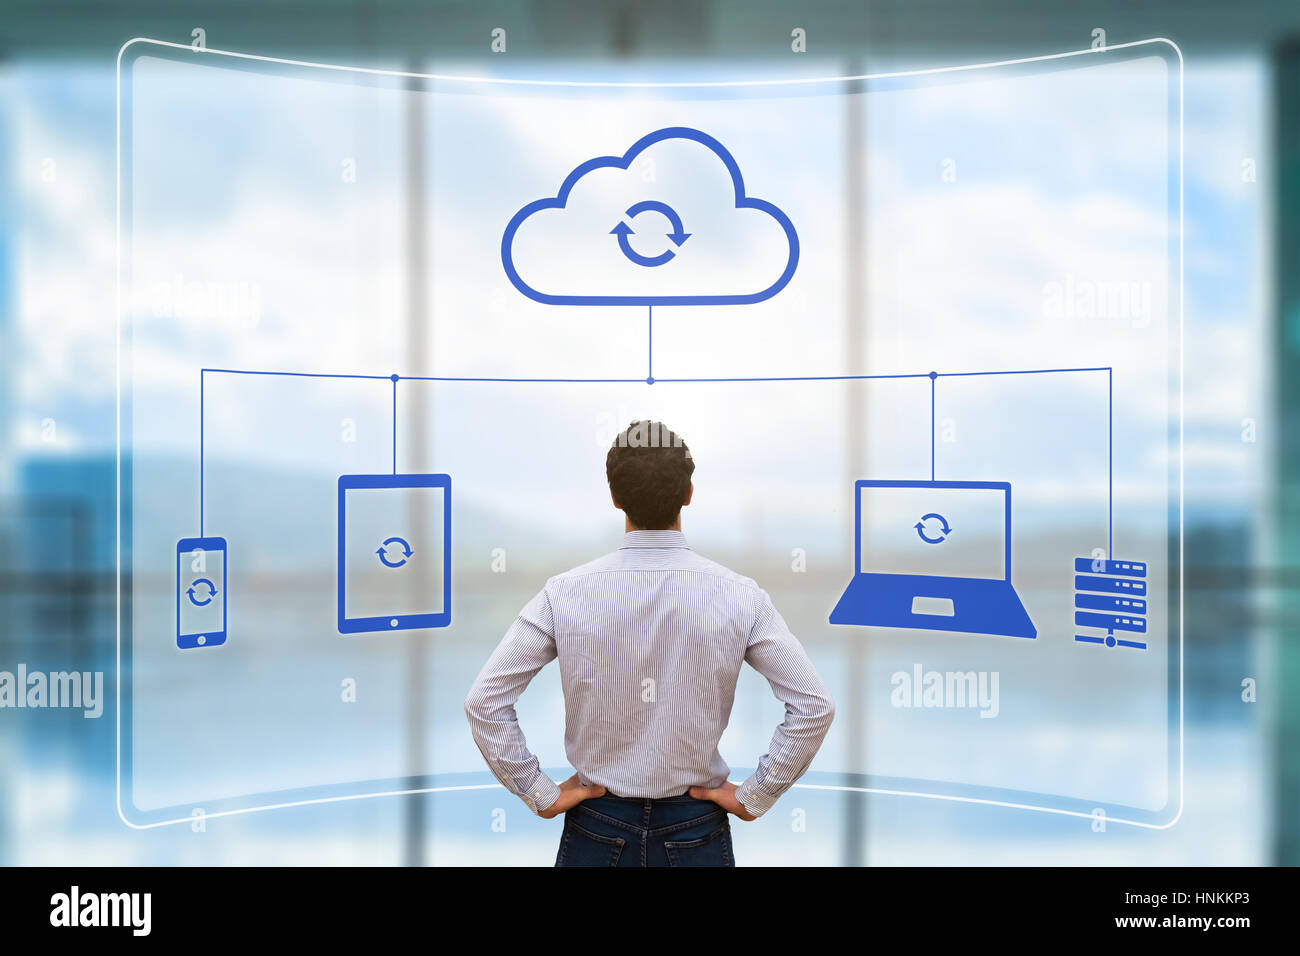 Cloud synchronizing between devices concept with a virtual screen showing mobile phone, tablet and laptop computer Stock Photo